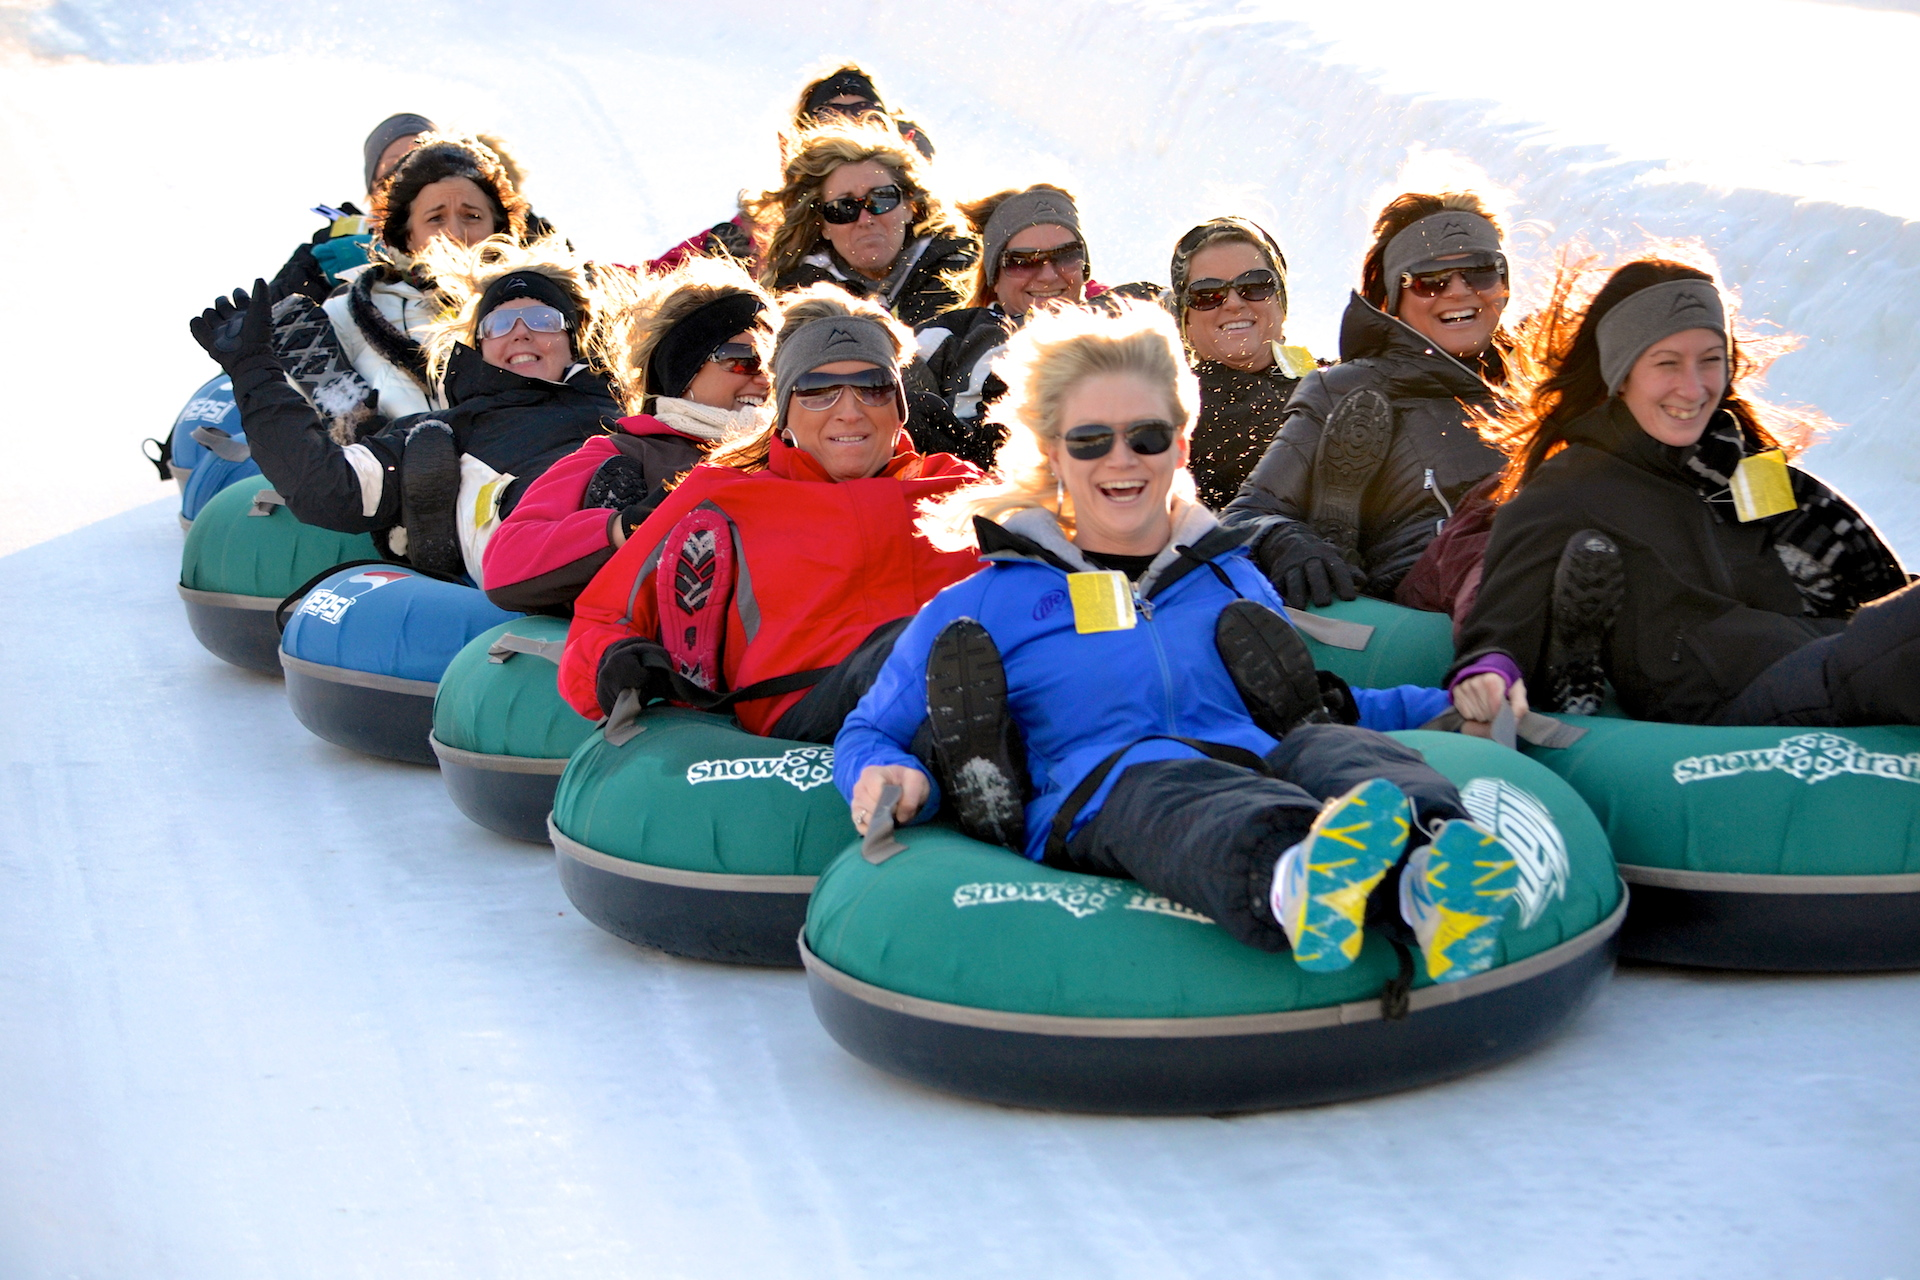 Where To Buy Tubes For Snow Tubing